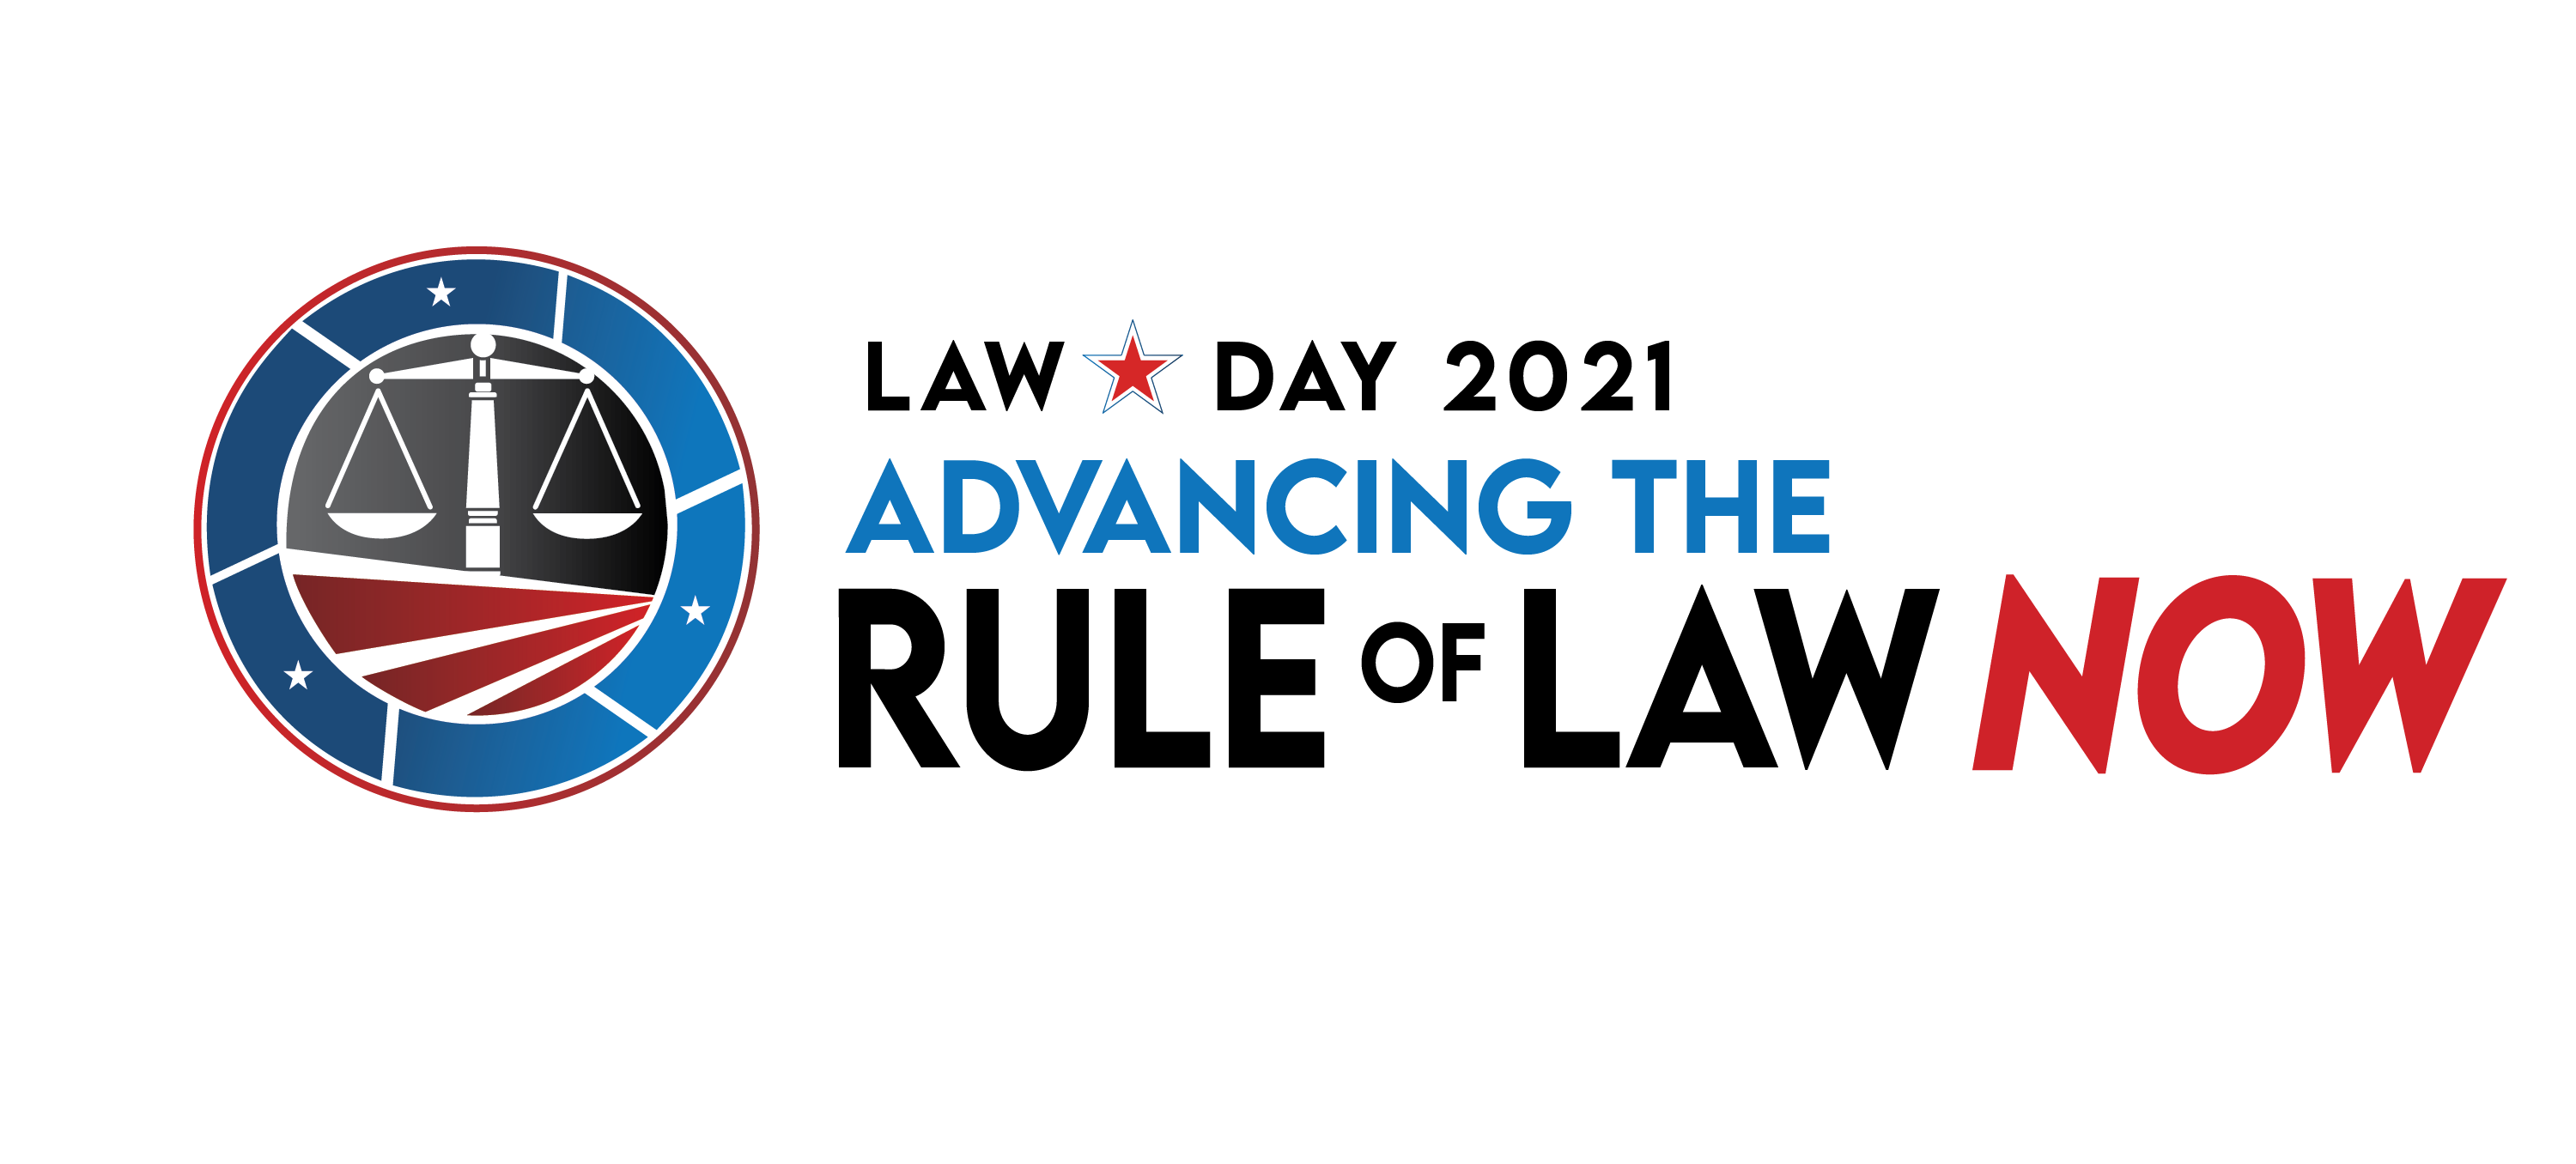 Law Day 2021 Logo Advancing the Rule of Law Now